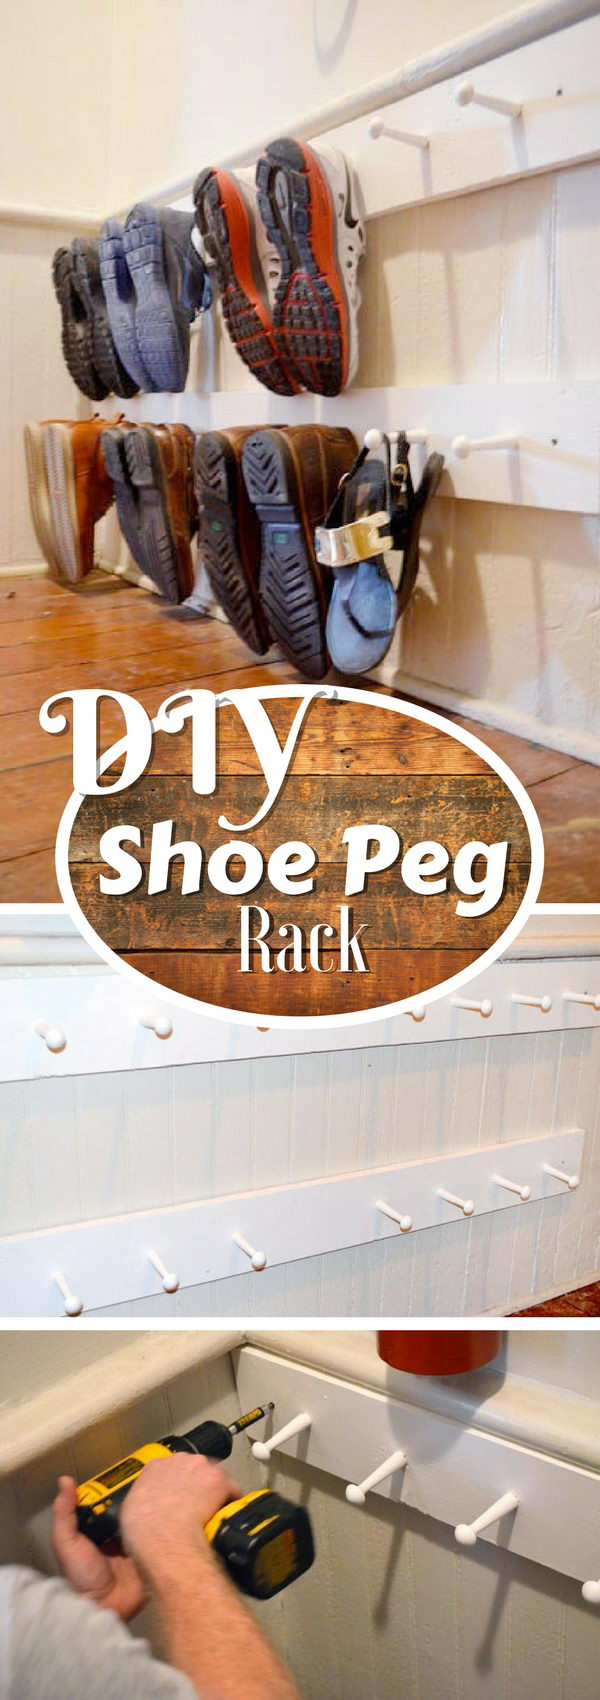 Easy Shoe Peg Rack.